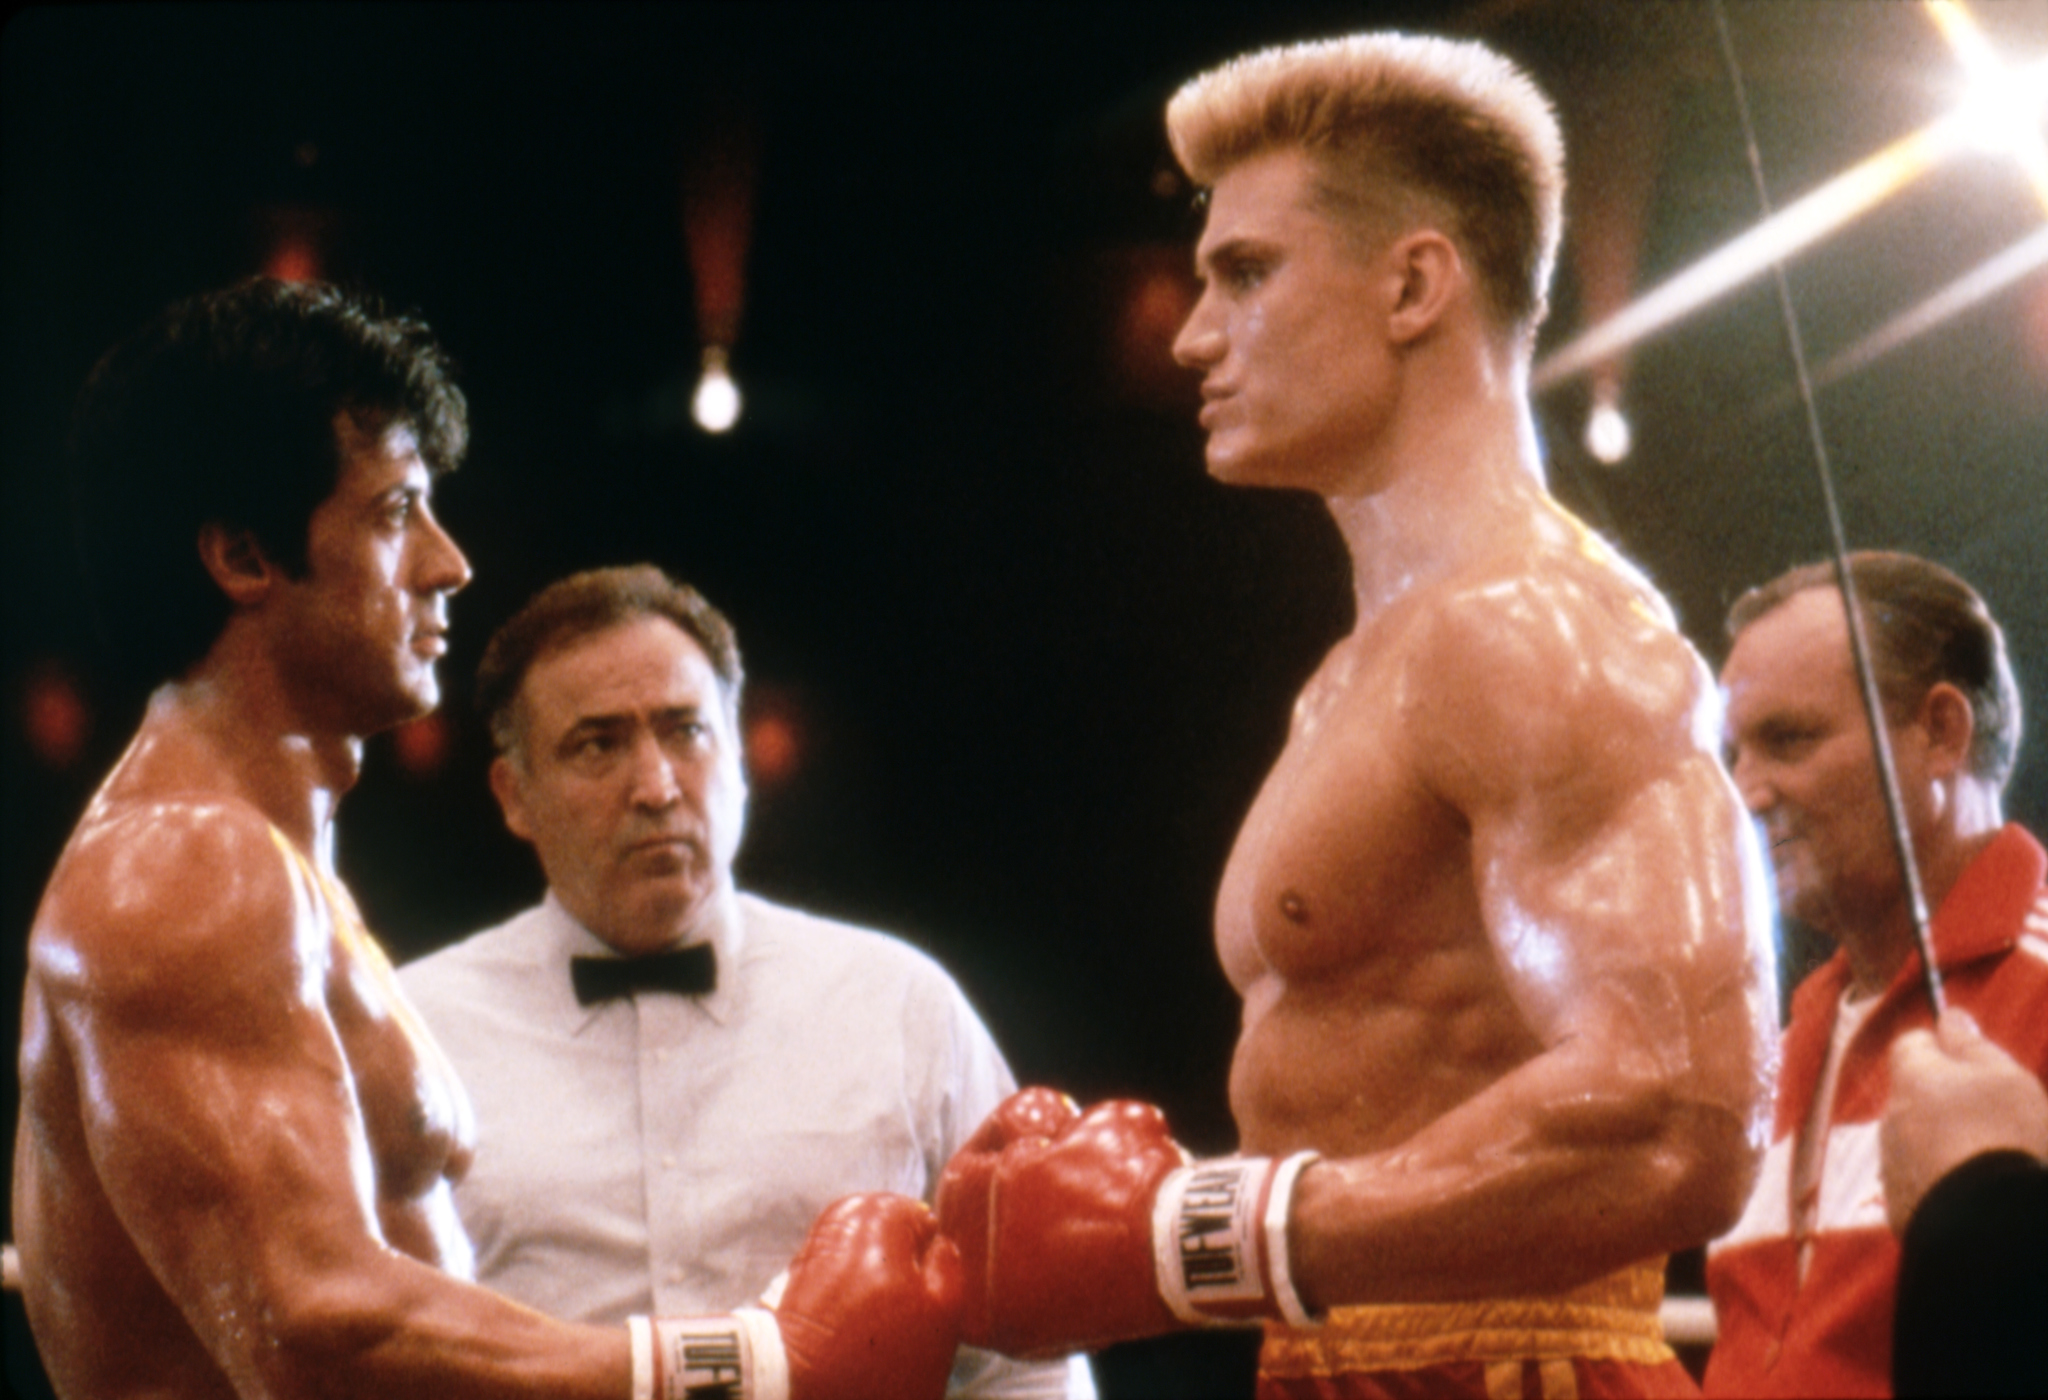 Dolph Lundgren, Sylvester Stallone, Marty Denkin, and George Rogan in Rocky IV (1985)